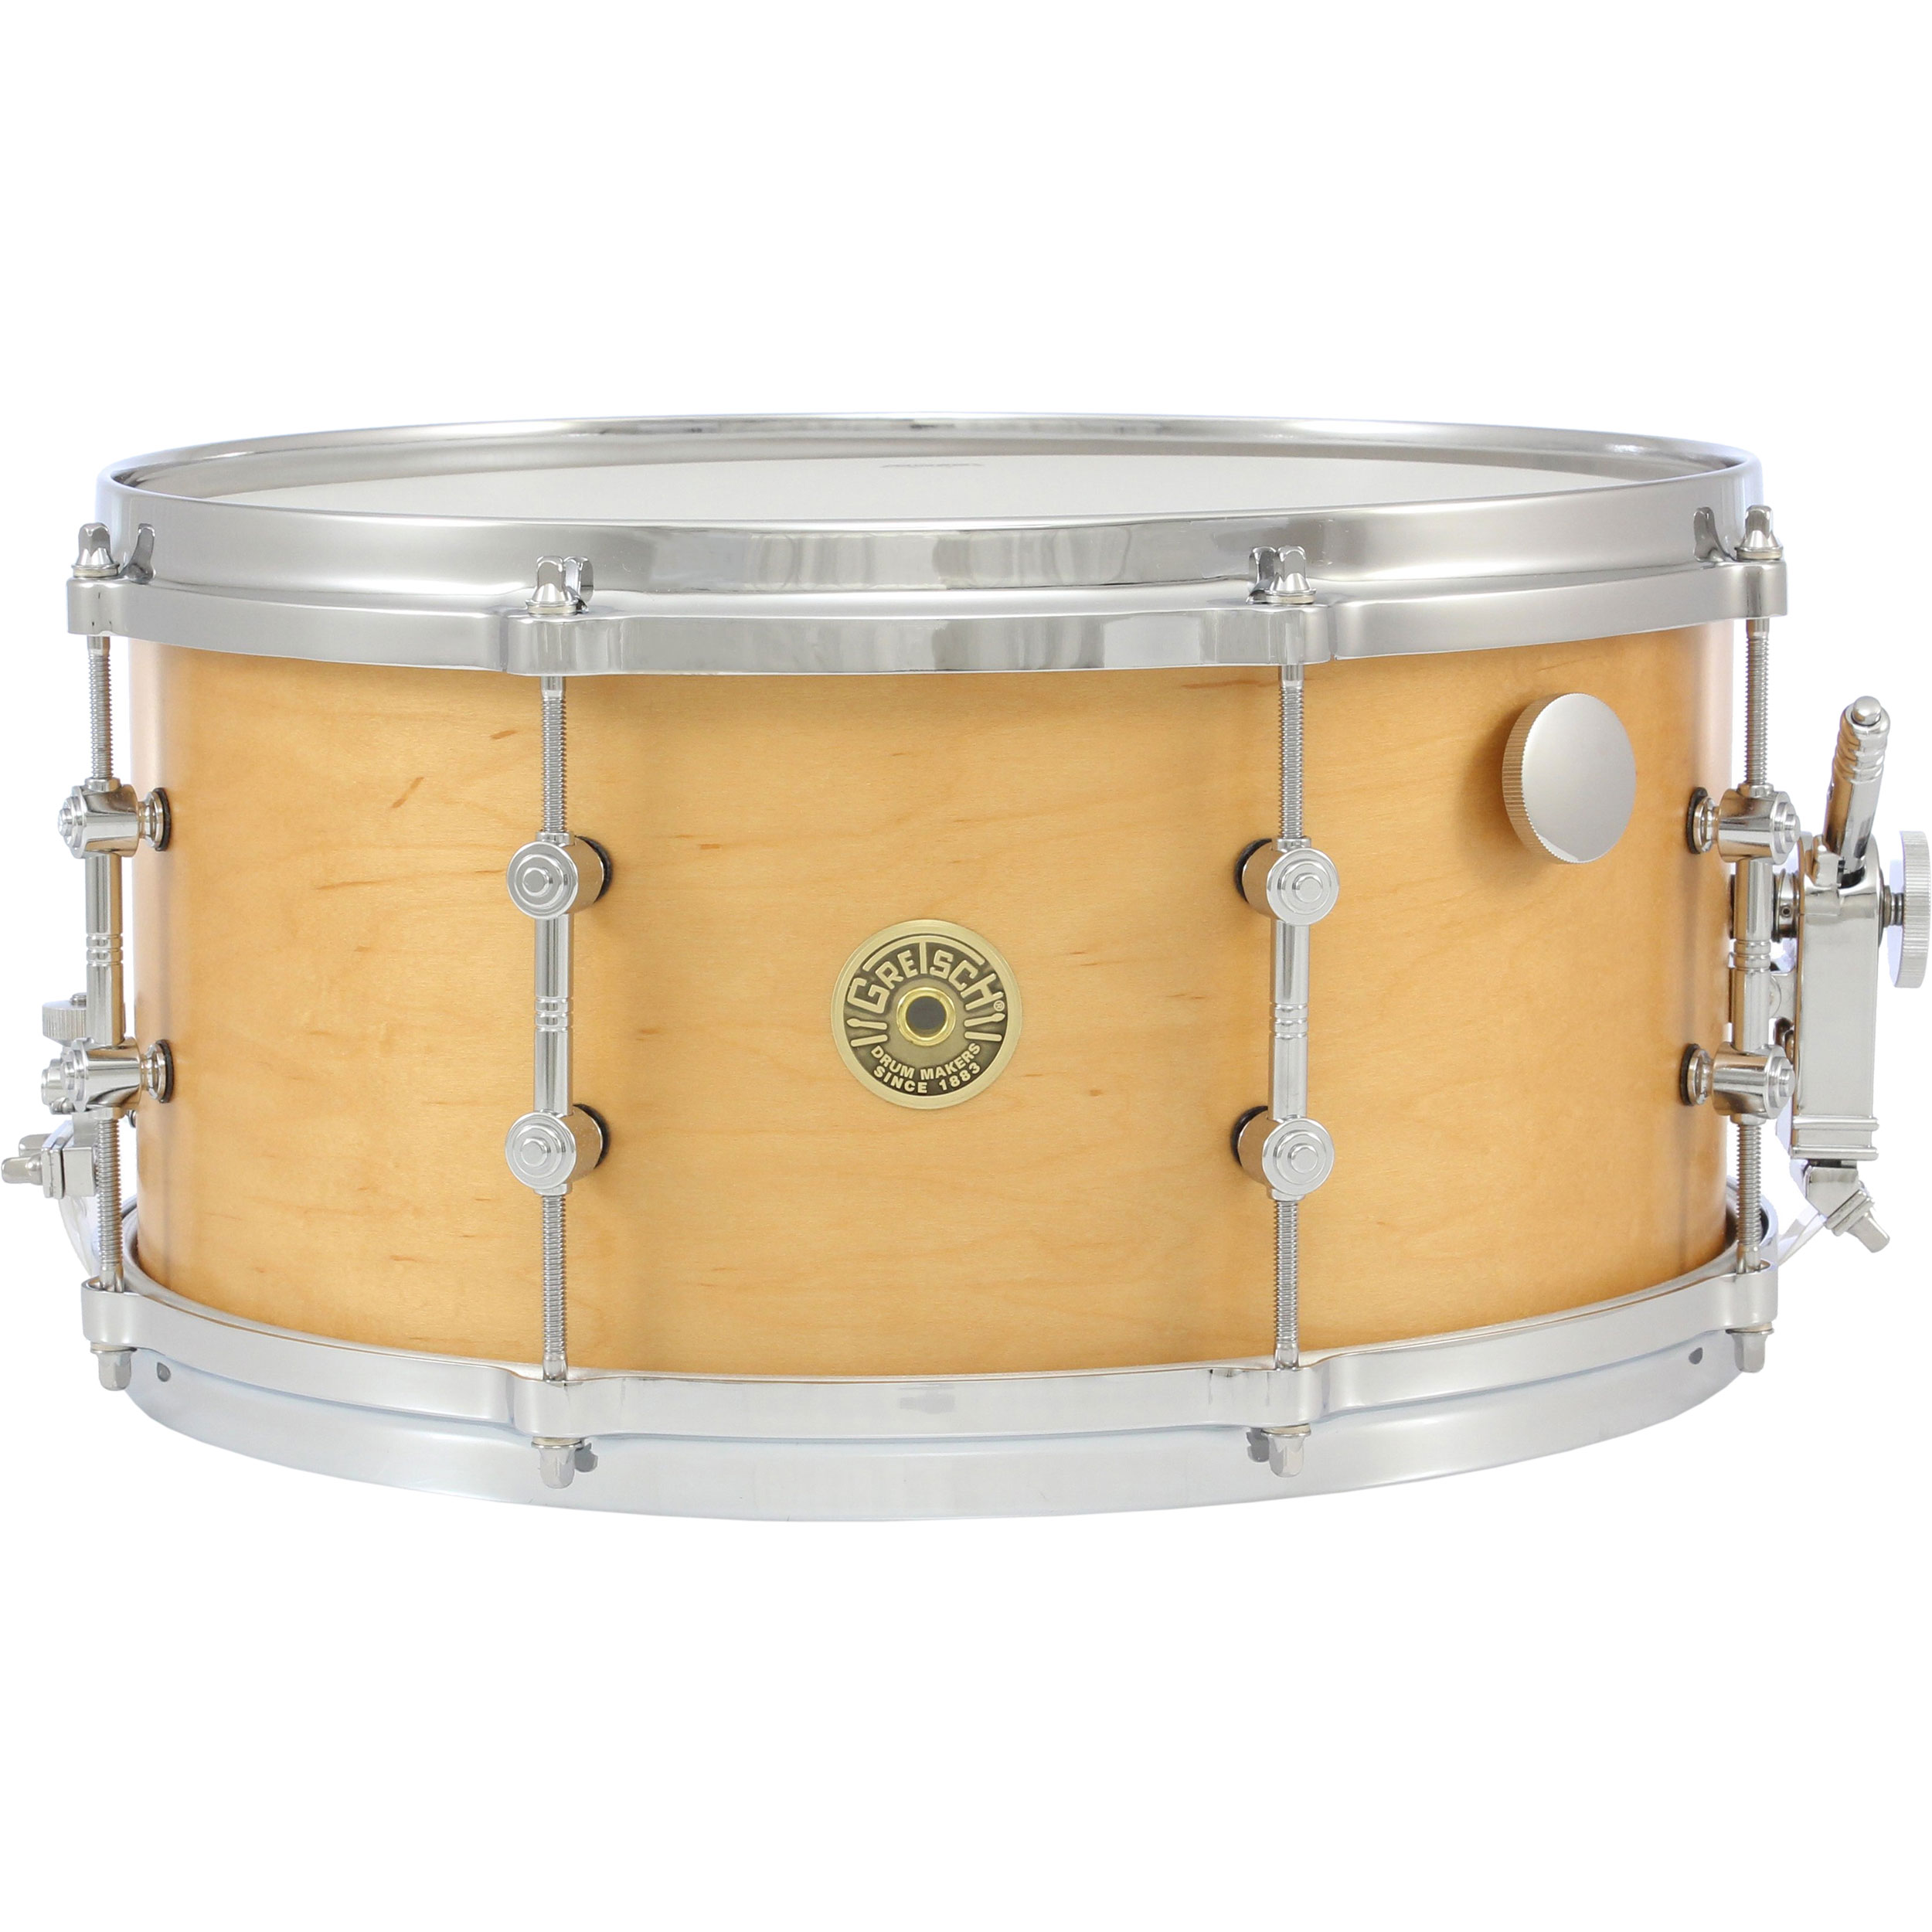 "Gretsch 7"" x 14"" USA Custom Millennium Maple Snare Drum"